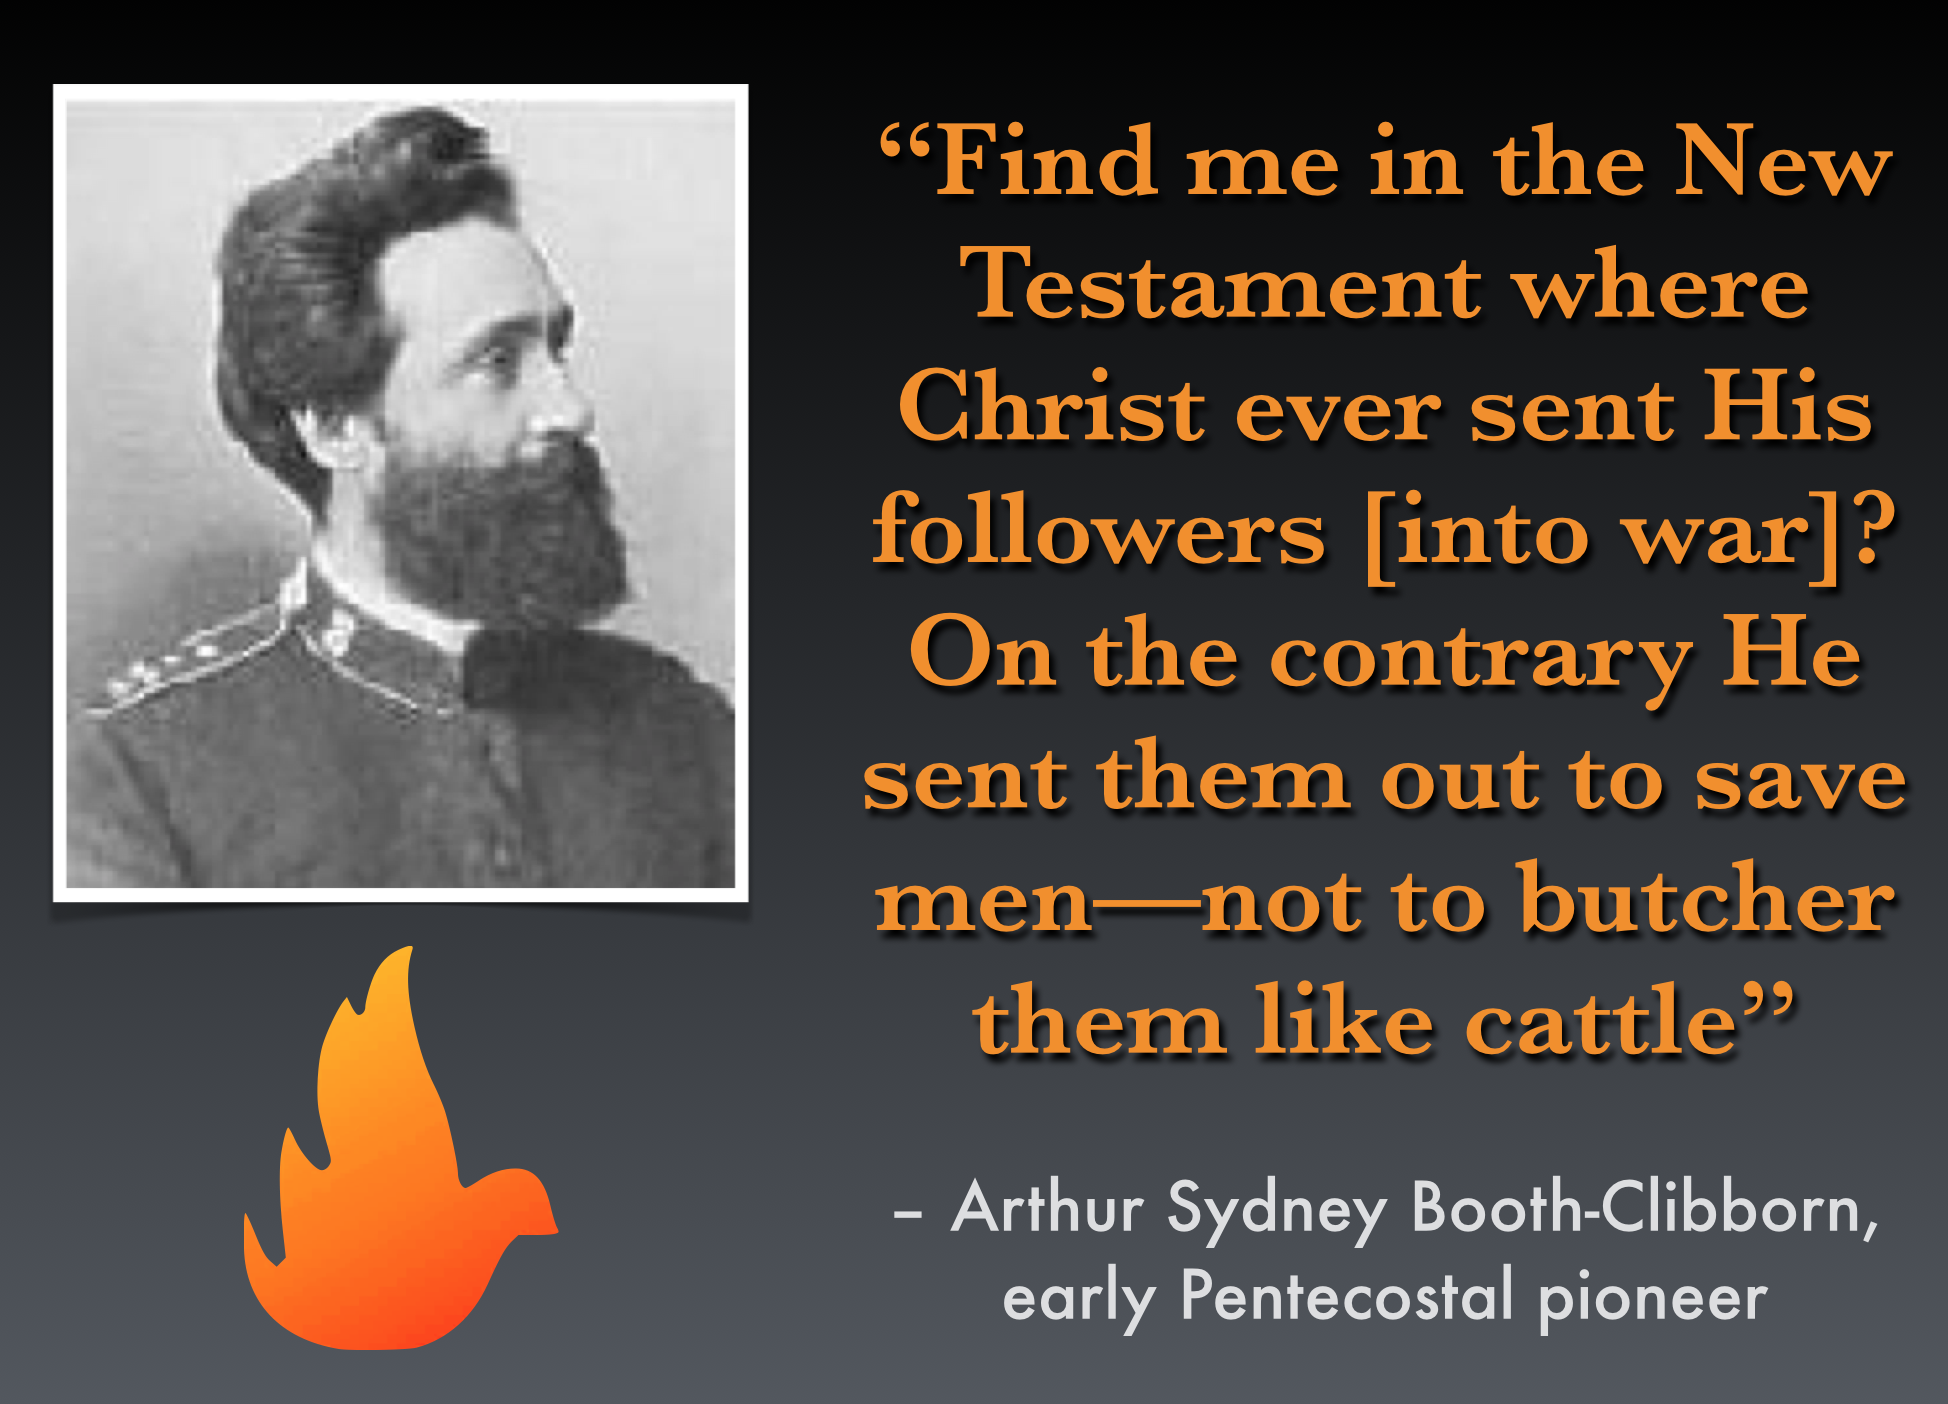 The Pentecostal Pacifism of Arthur Booth-Clibborn